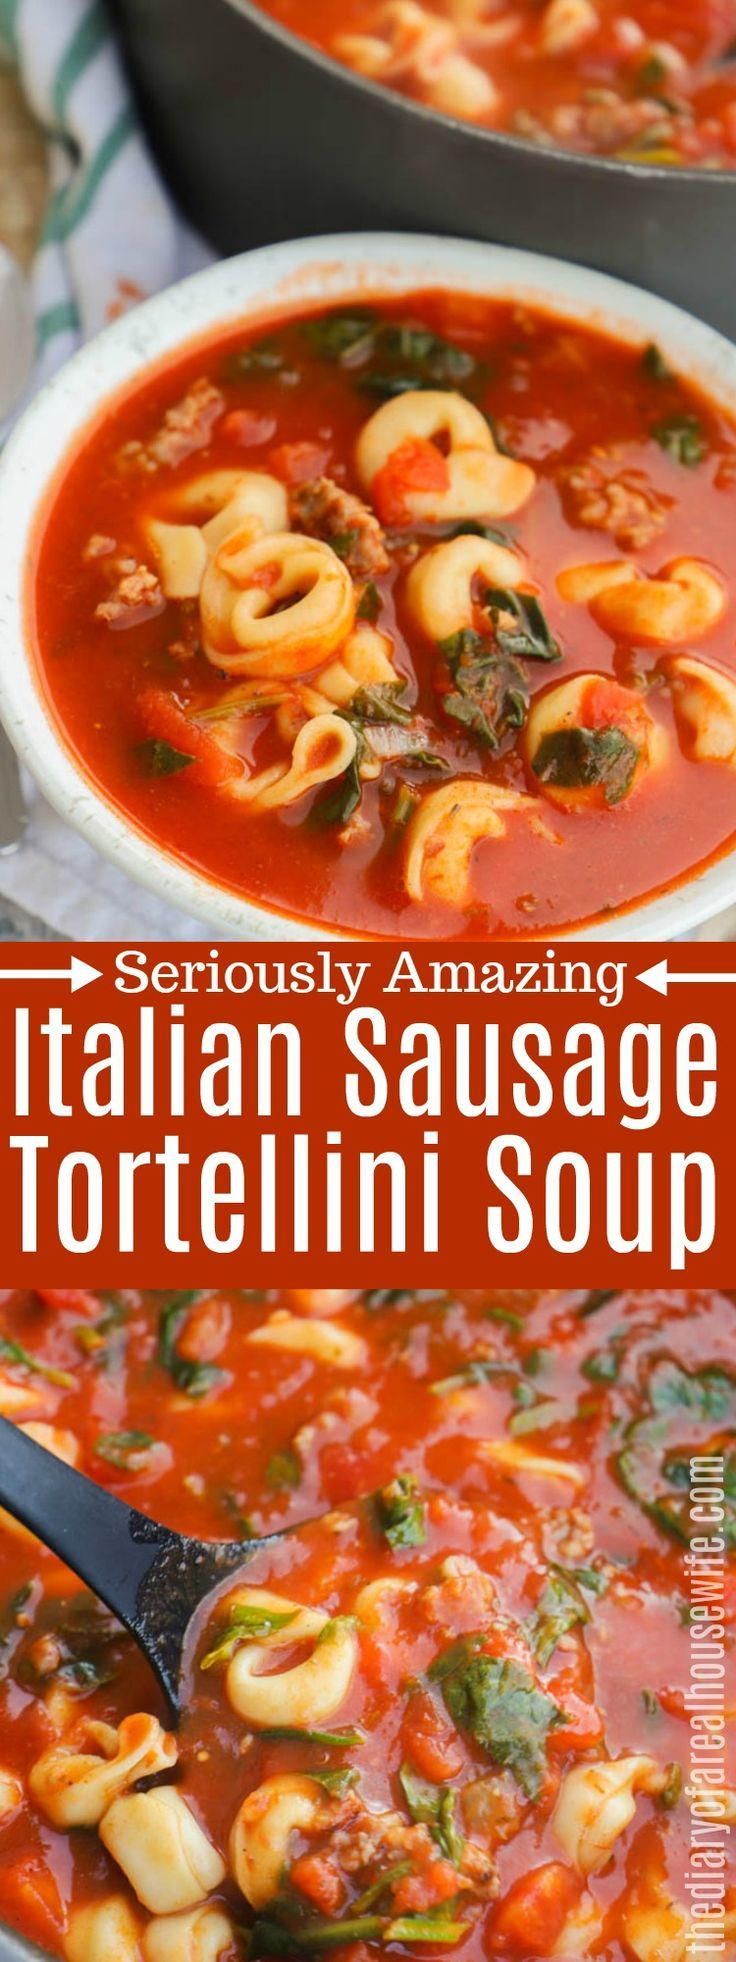 I LOVE this soup recipe, you have to try it! Italian Sausage Tortellini Soup #soup #tortellini #easysausagerecipes